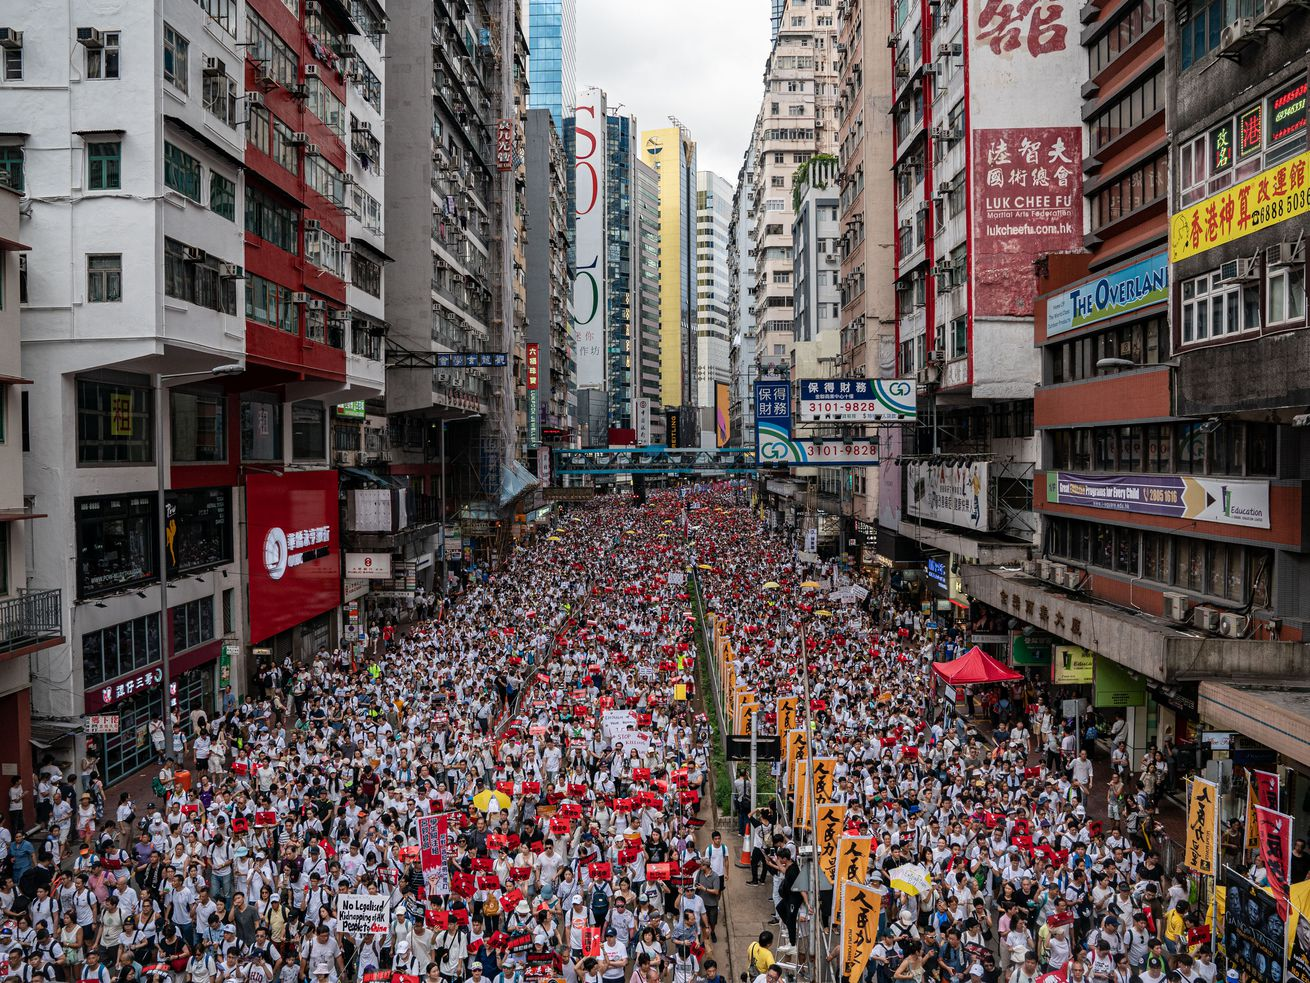 Protesters march against a new extradition law proposal on June 9, 2019 in Hong Kong.